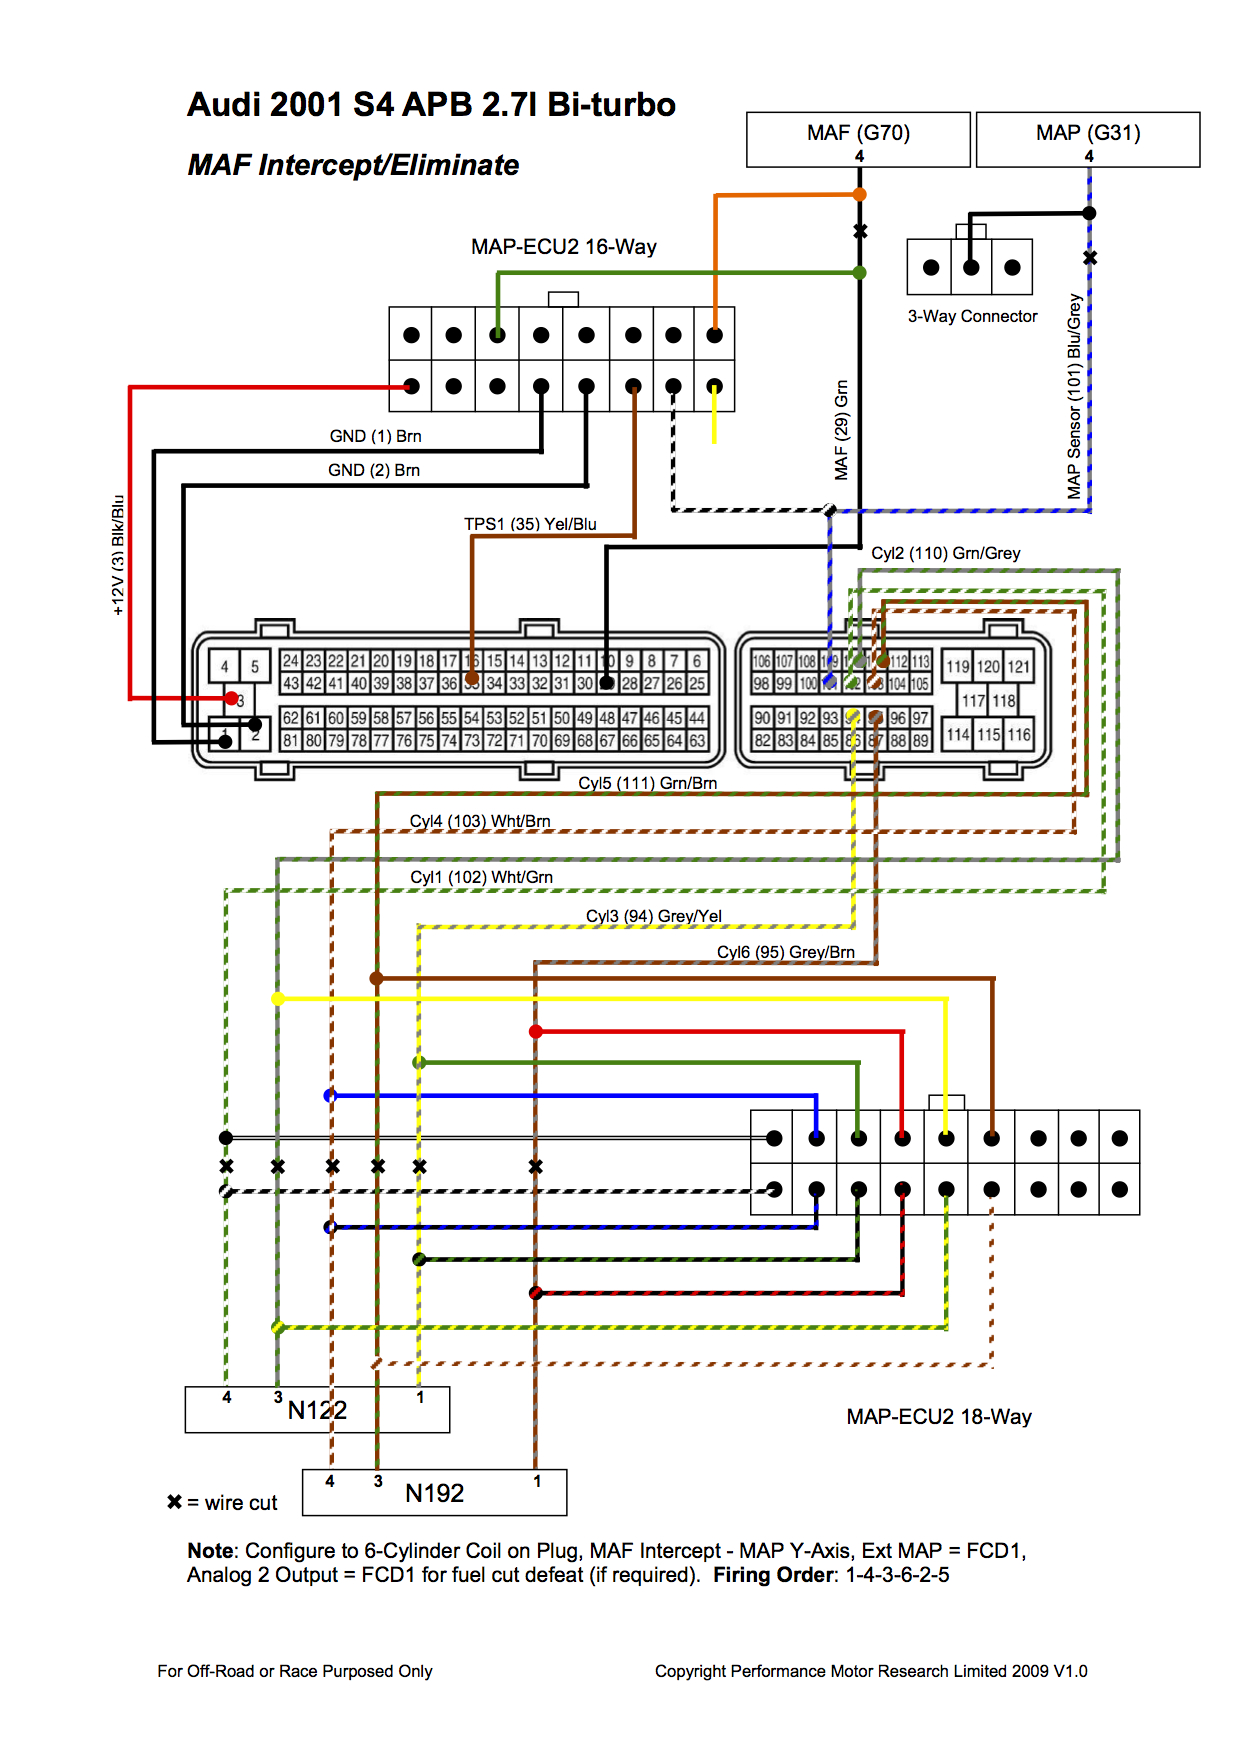 Audi S4 20011 ecu wiring diagram paccar ecu wiring diagram \u2022 wiring diagrams j  at love-stories.co